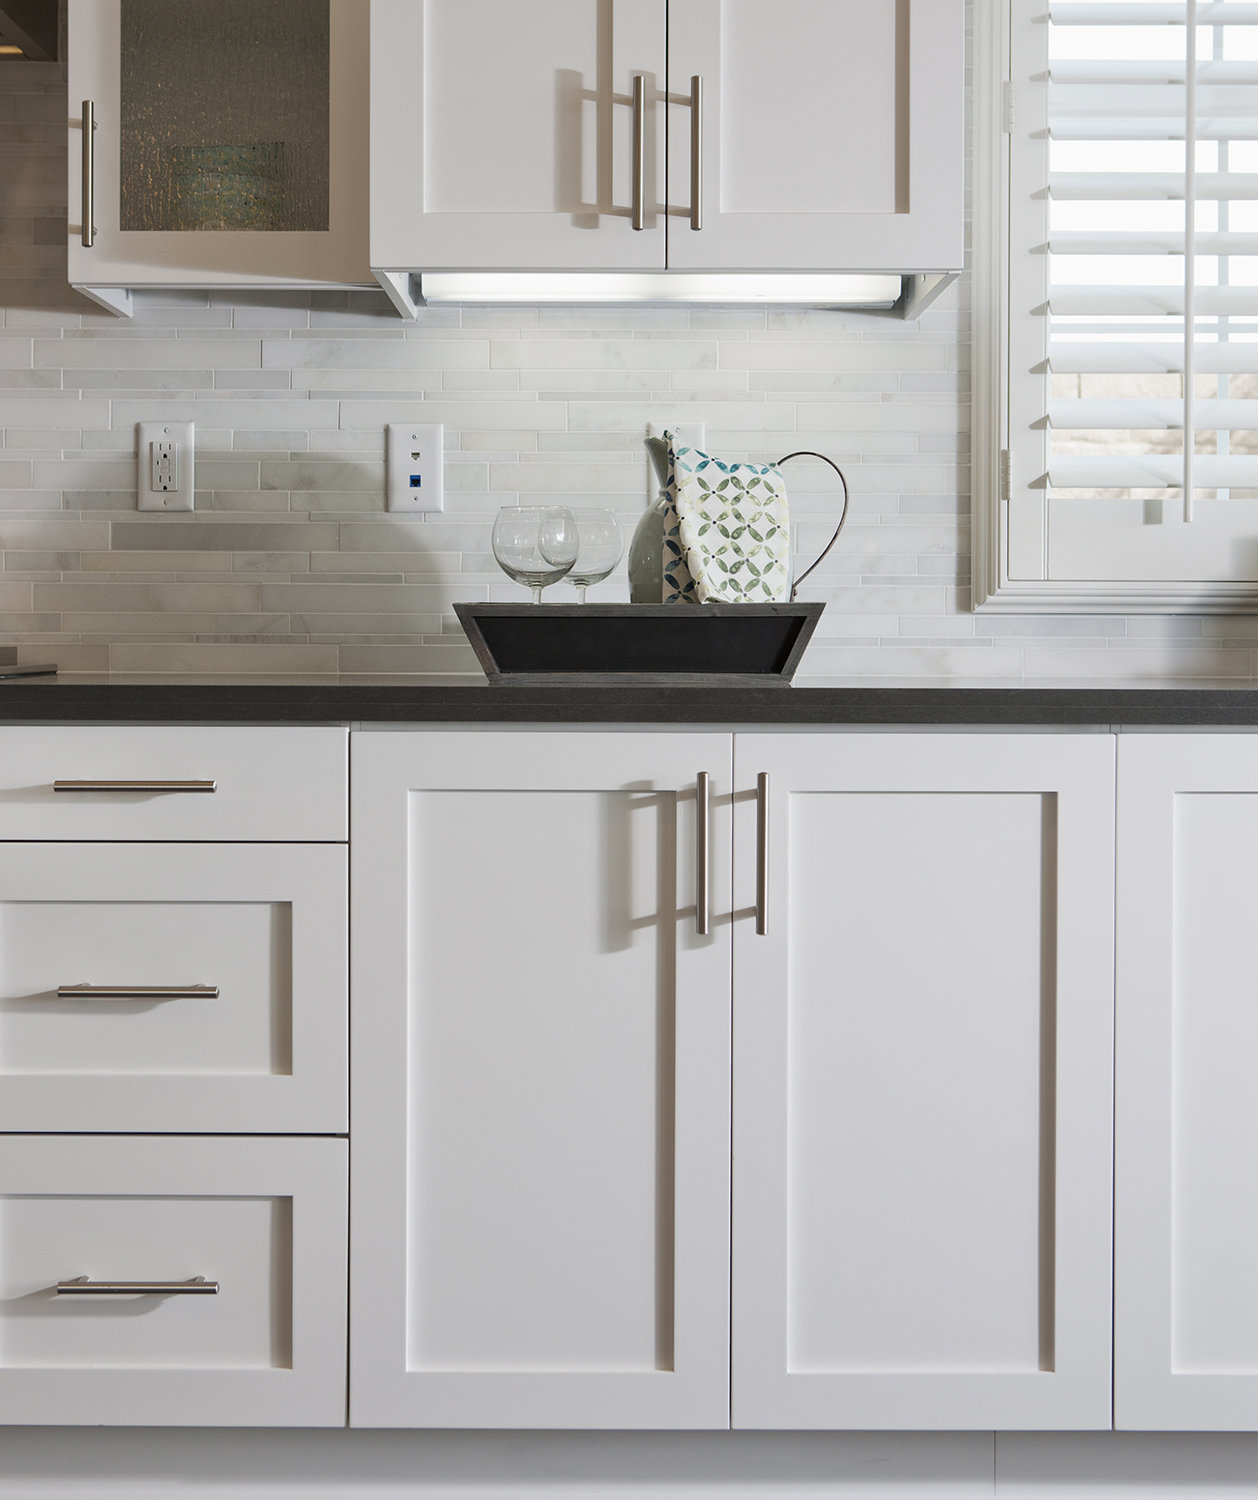 How to spruce up your rental kitchen real simple for Kitchen cabinets handles ideas